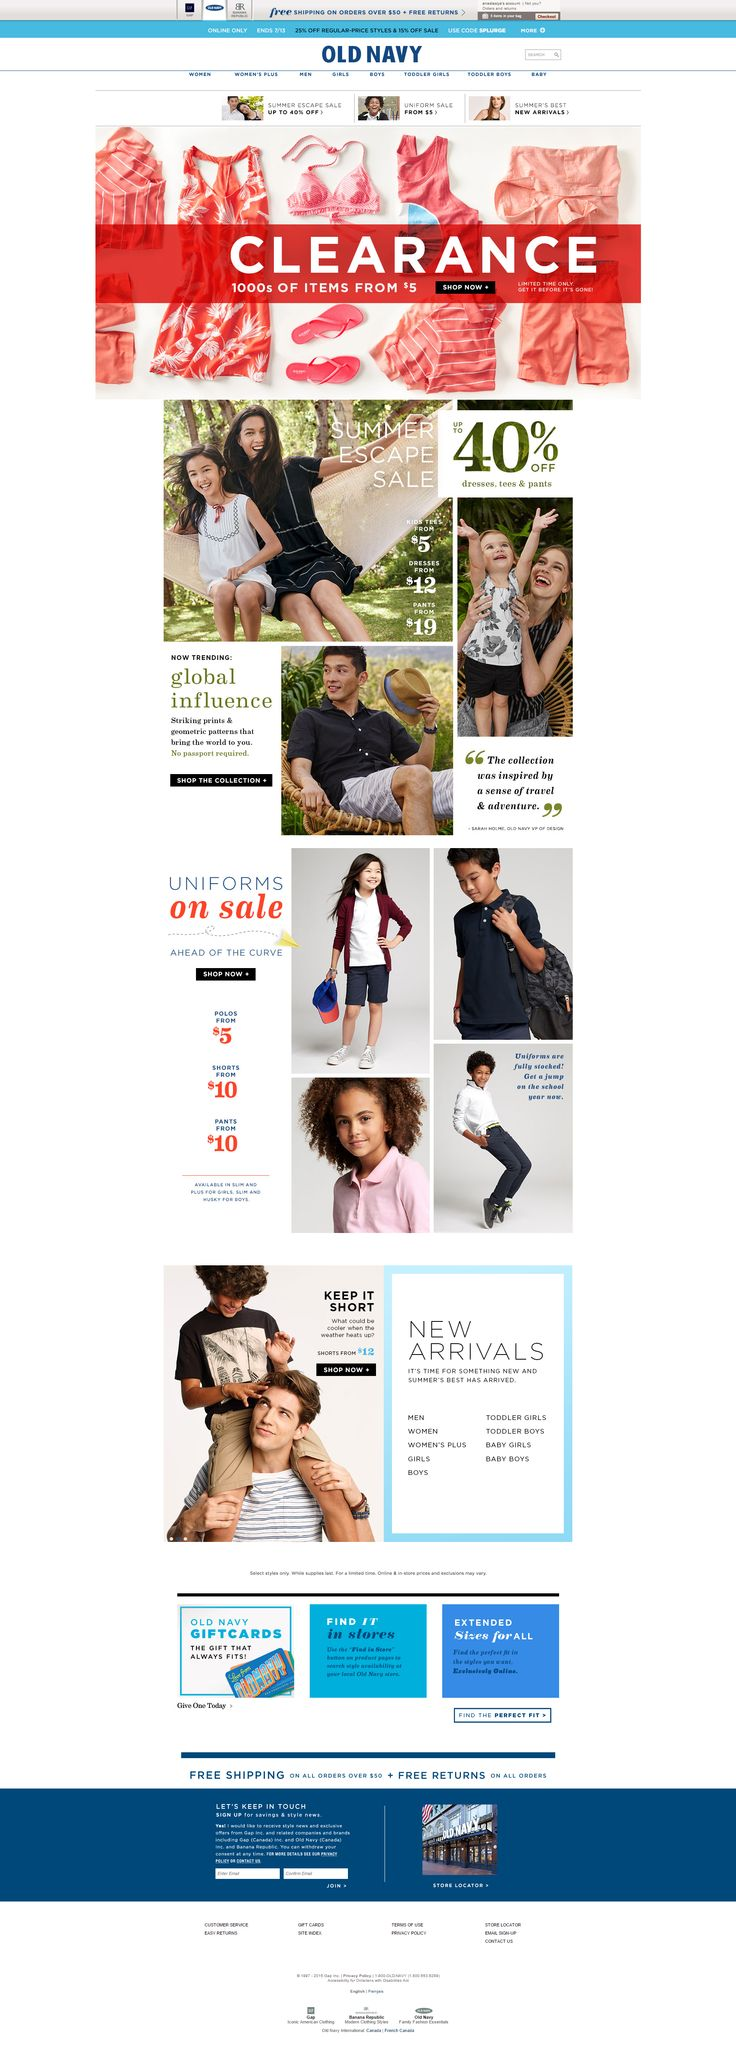 old navy web design || Weekly web design Inspiration for everyone! Introducing Moire Studios a thriving website and graphic design studio. Feel Free to Follow us @moirestudiosjkt to see more remarkable pins like this. Or visit our website www.moirestudiosjkt.com to learn more about us. #WebDesign #WebsiteInspiration #WebDesignInspiration ||